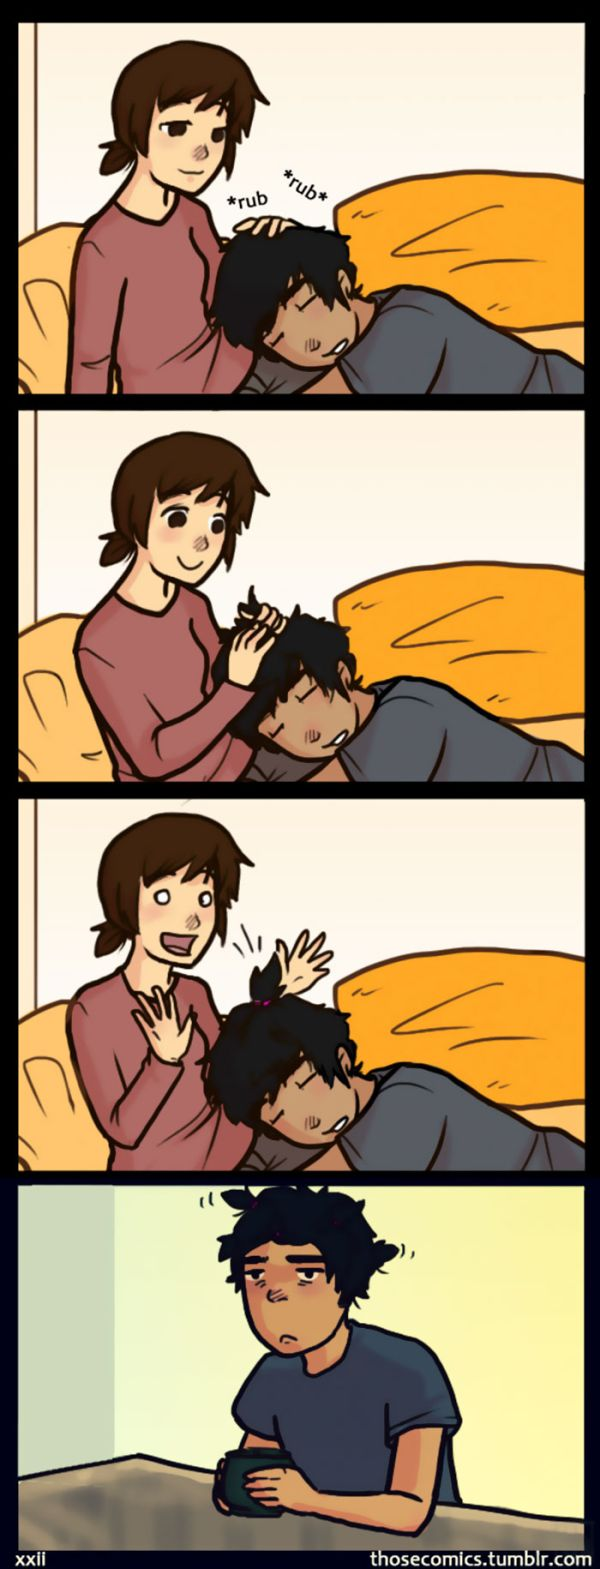 Comics About Couple Life Show Happiness Is In The Little Things